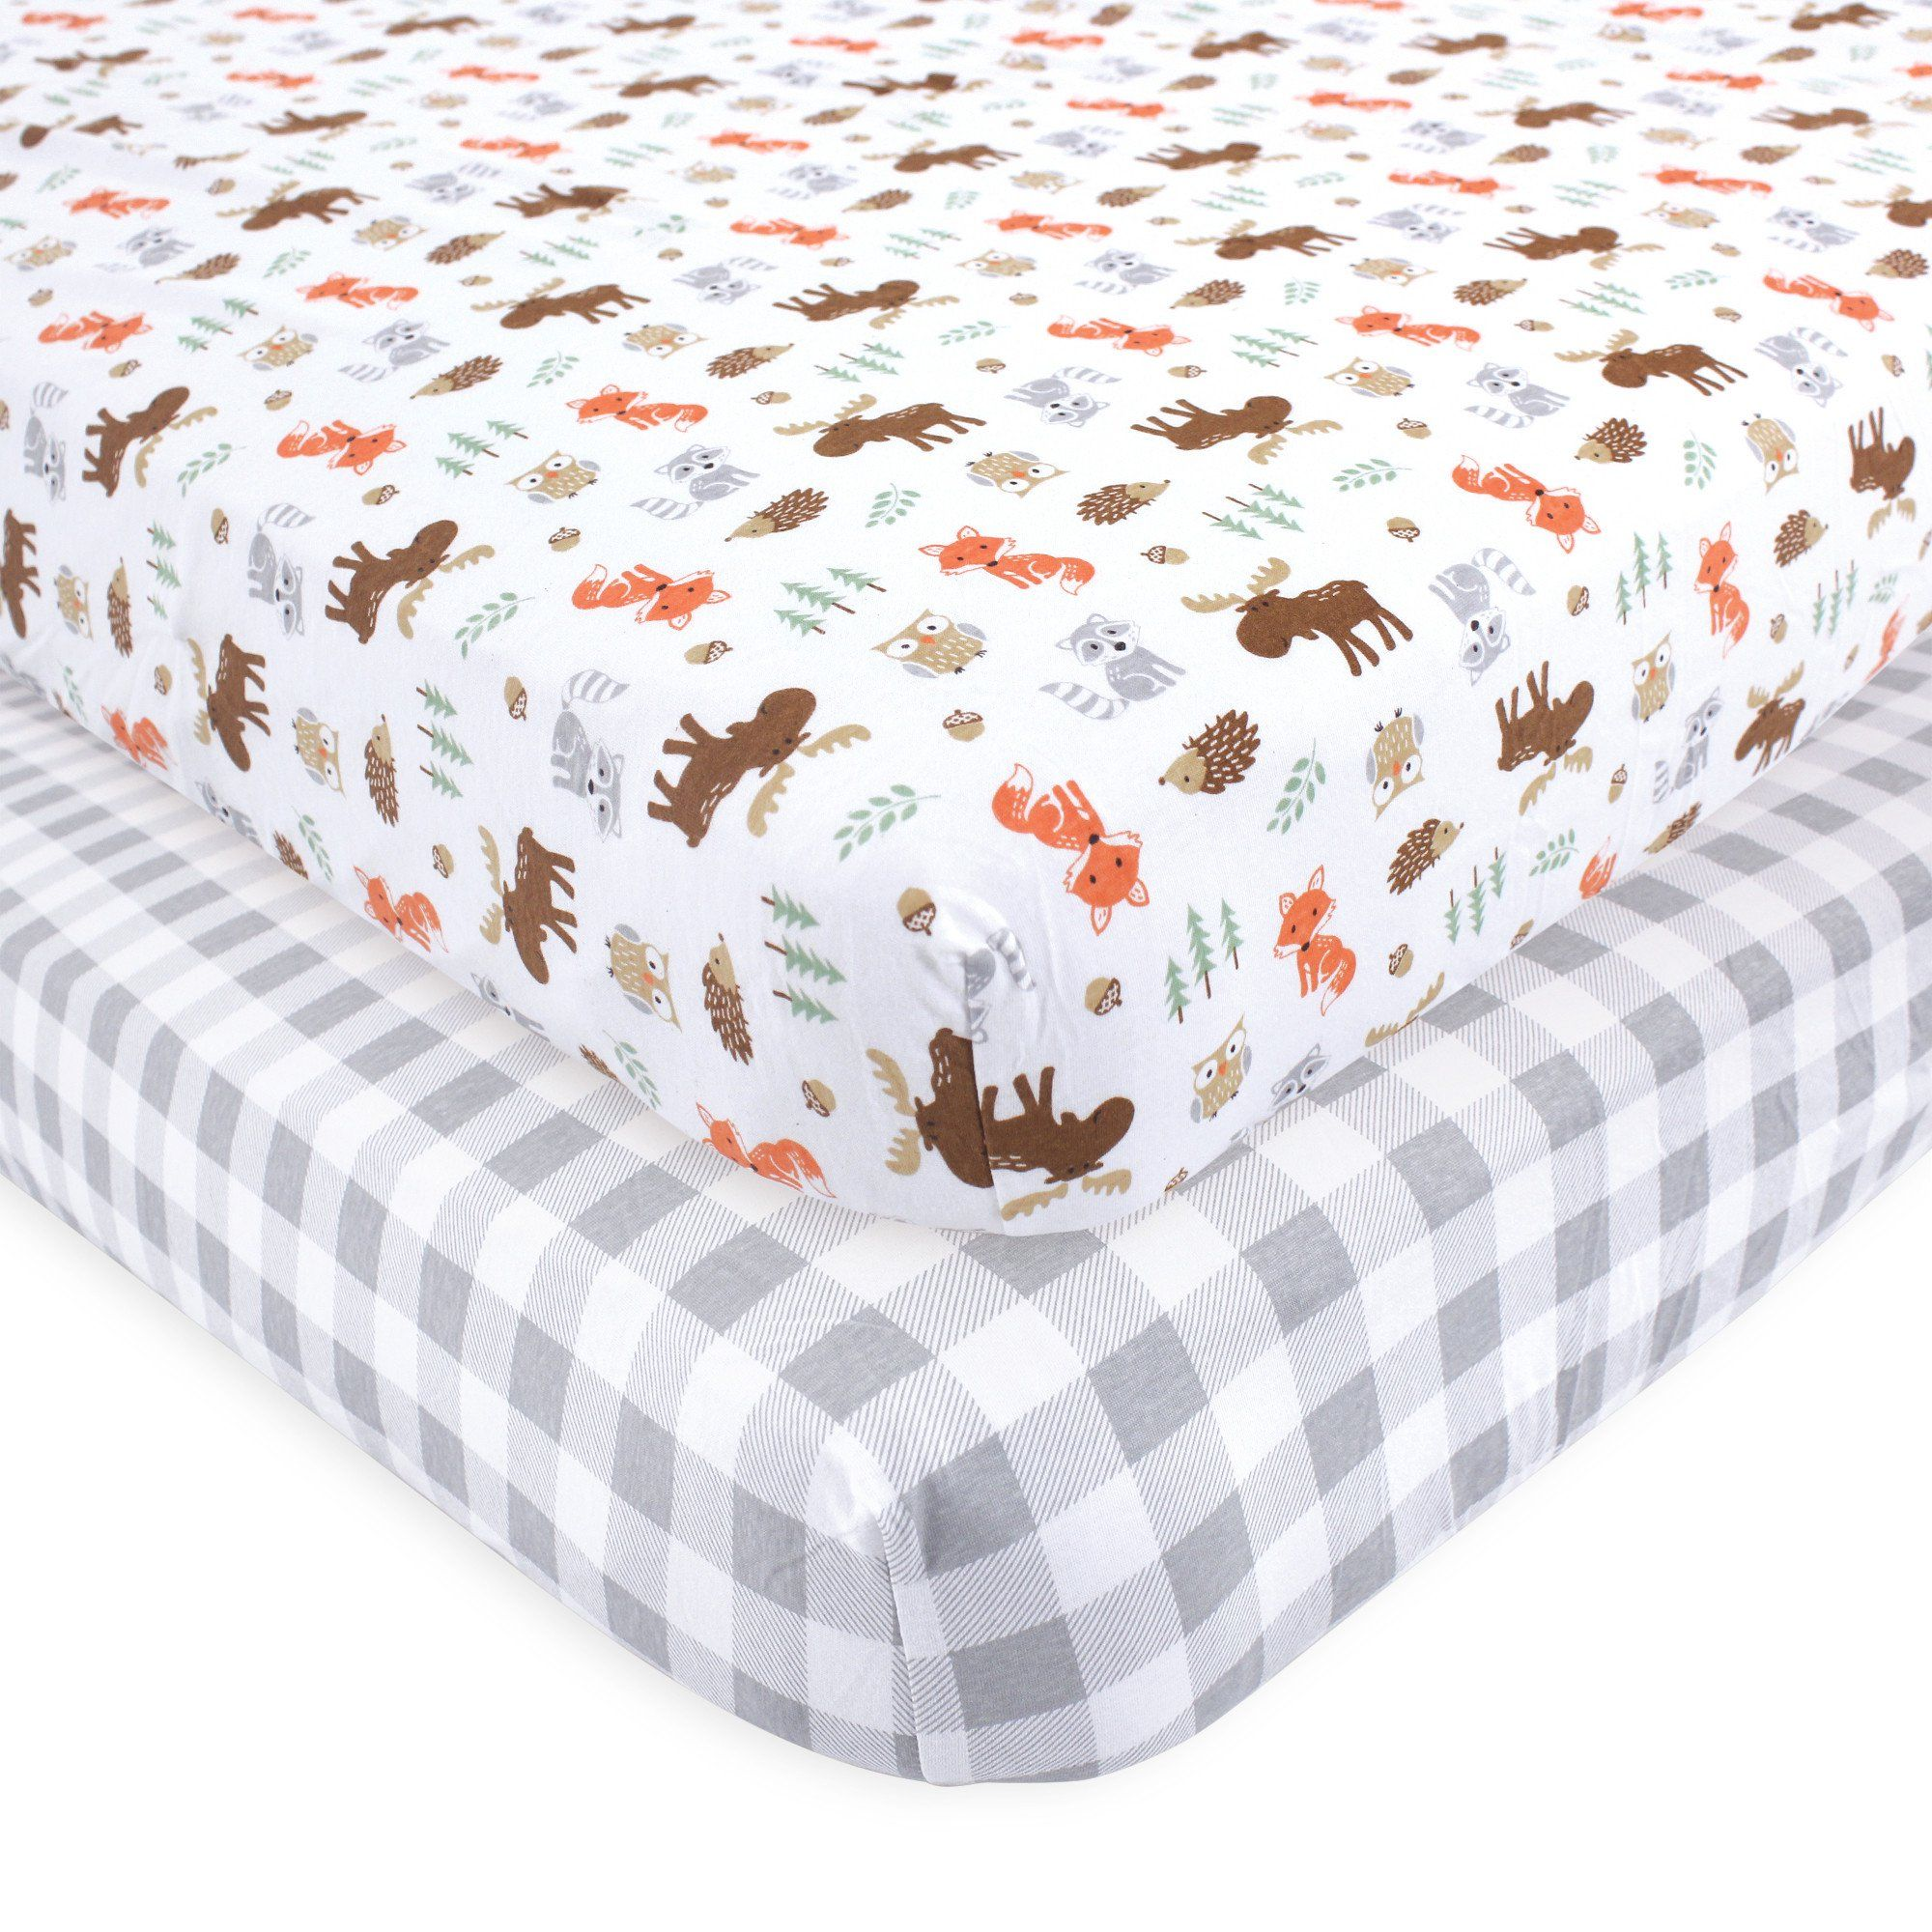 Hudson Baby Boy And Girl Fitted Crib Sheet 2 Pack Woodland Walmart Com In 2020 Crib Sheet Sets Fitted Crib Sheet Crib Sheets